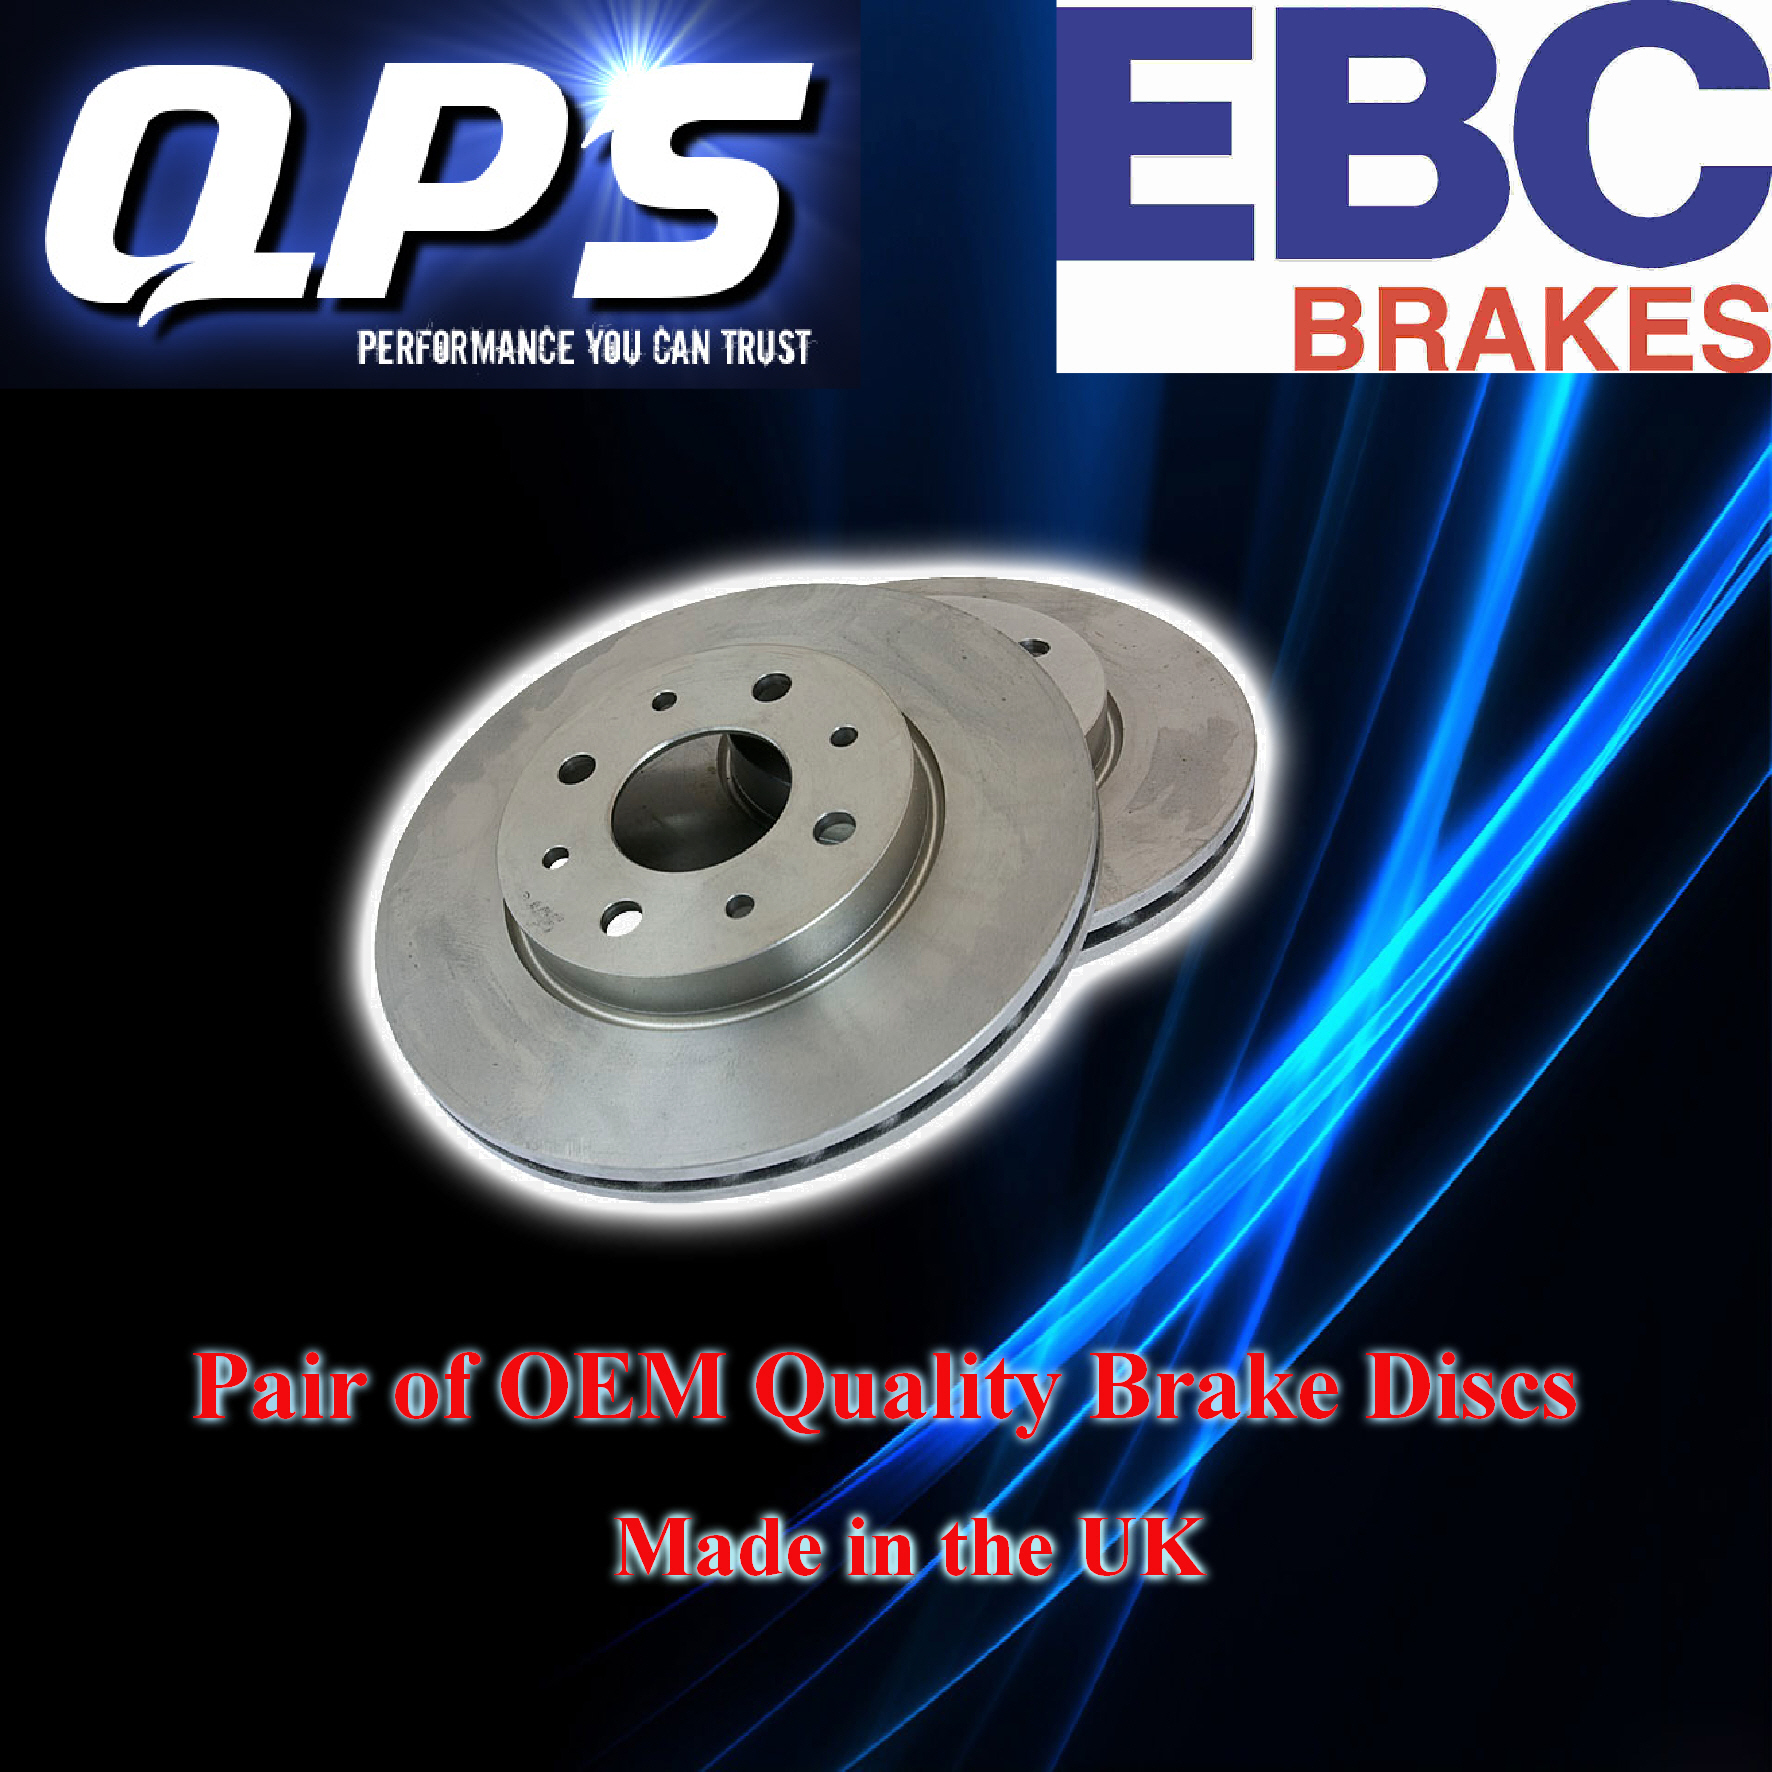 EBC Front Brake Discs (Rotors) for Toyota Camry 1.8 (SV10), 83->87